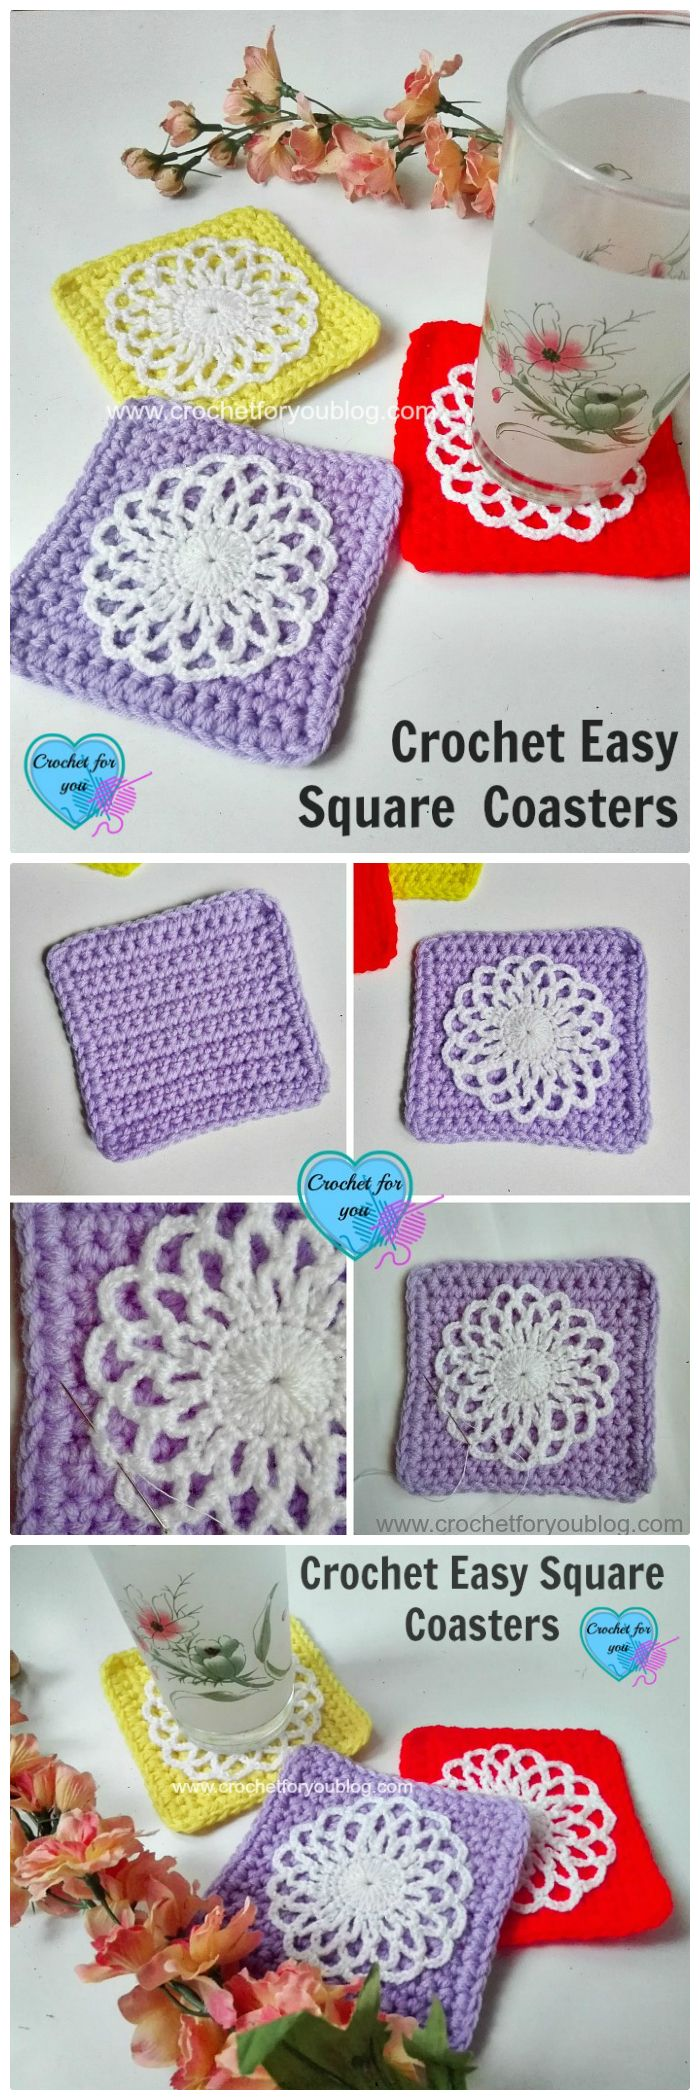 DIY Free Crochet Easy Square Coaster - free crochet coaster patterns | Free Crochet Coaster Patterns